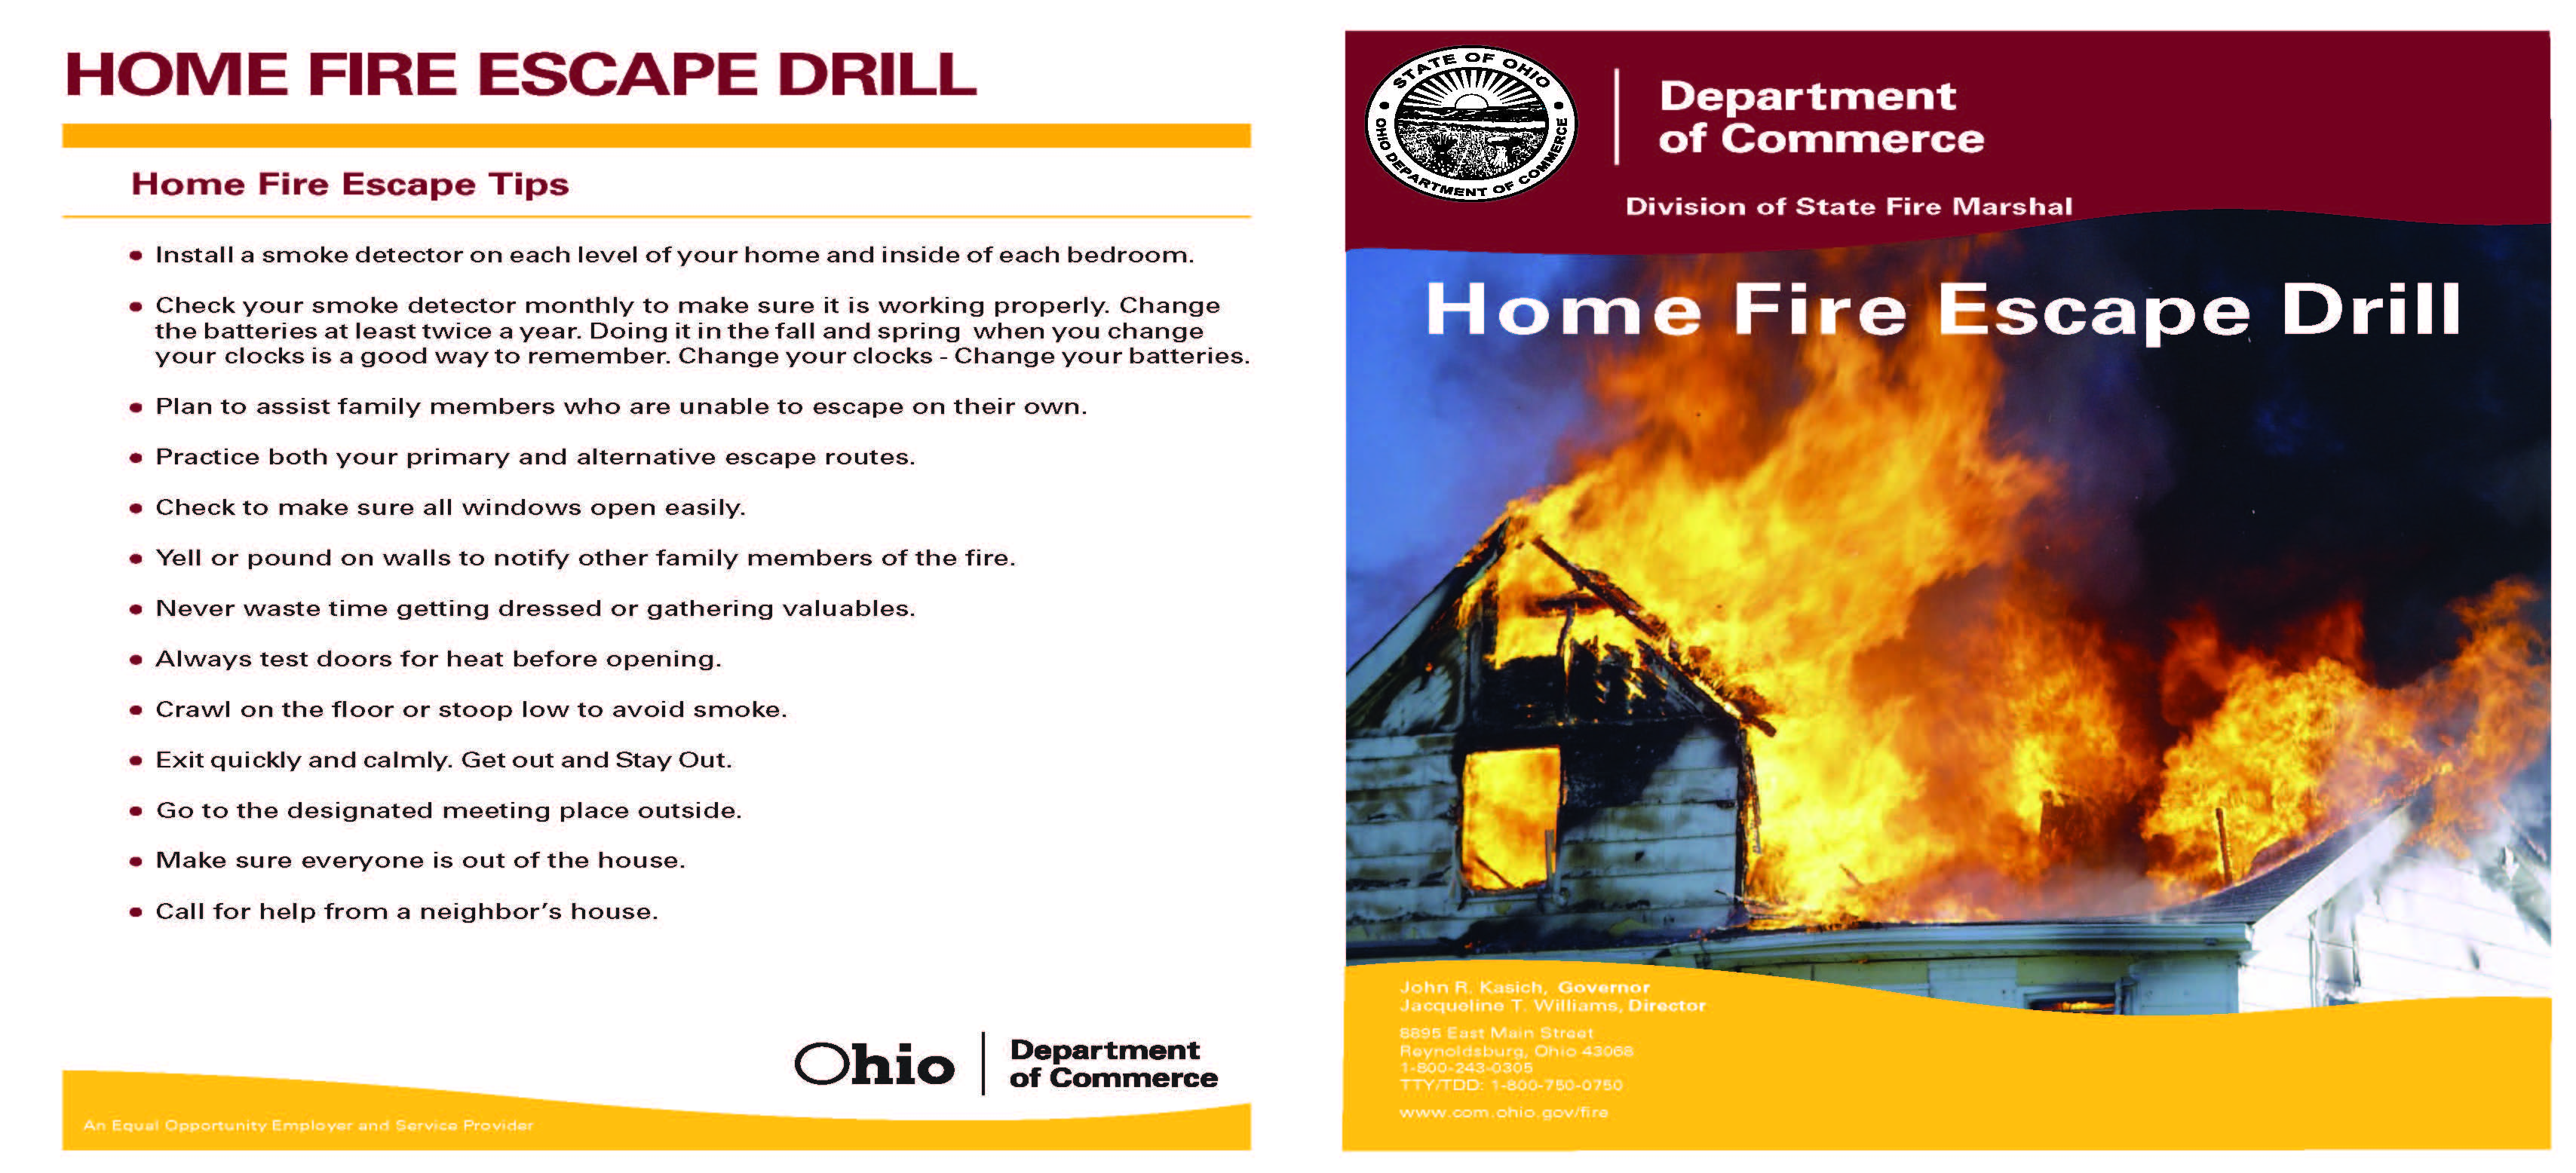 Home Fire Drills page 1